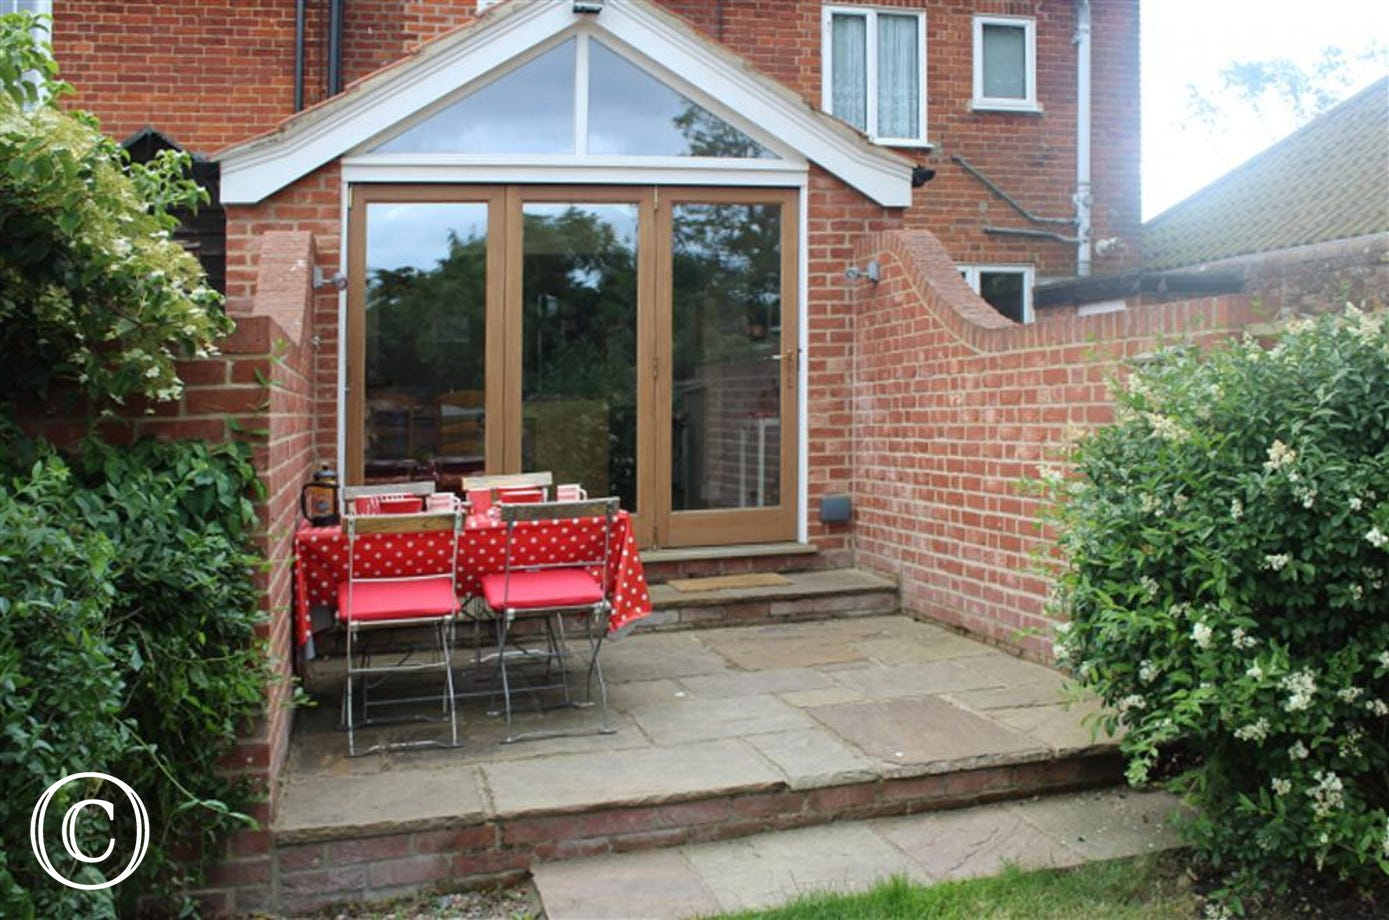 This patio area outside the kitchen makes for a great space to enjoy the tables and chairs provided and have a few alfresco meals